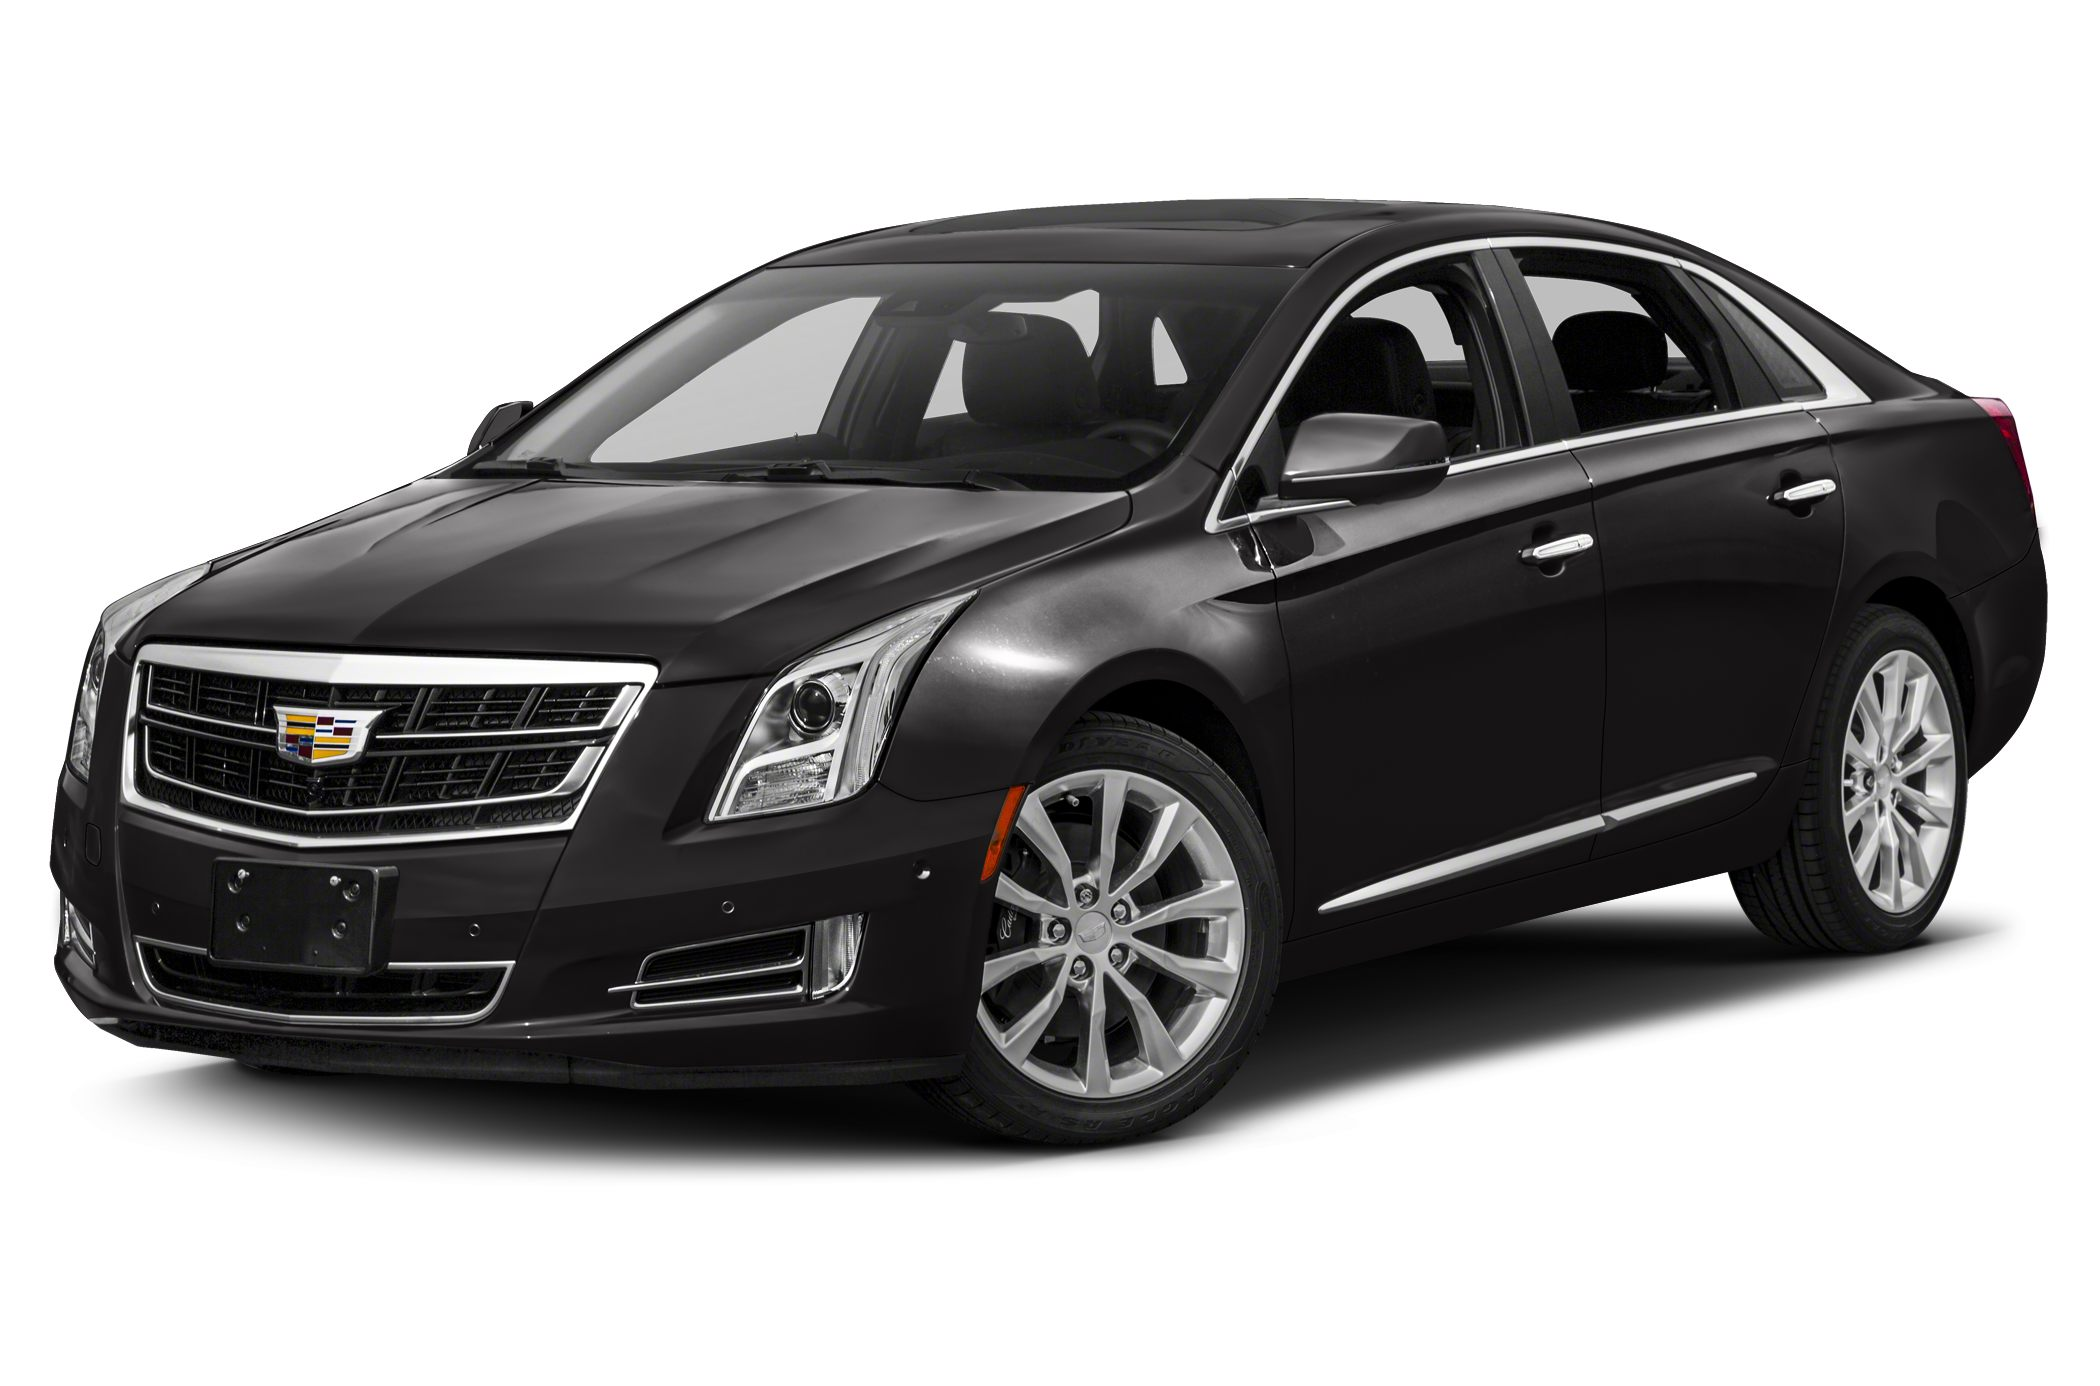 collection near cadillac fl main beach htm c pompano for platinum stock xts used l sale